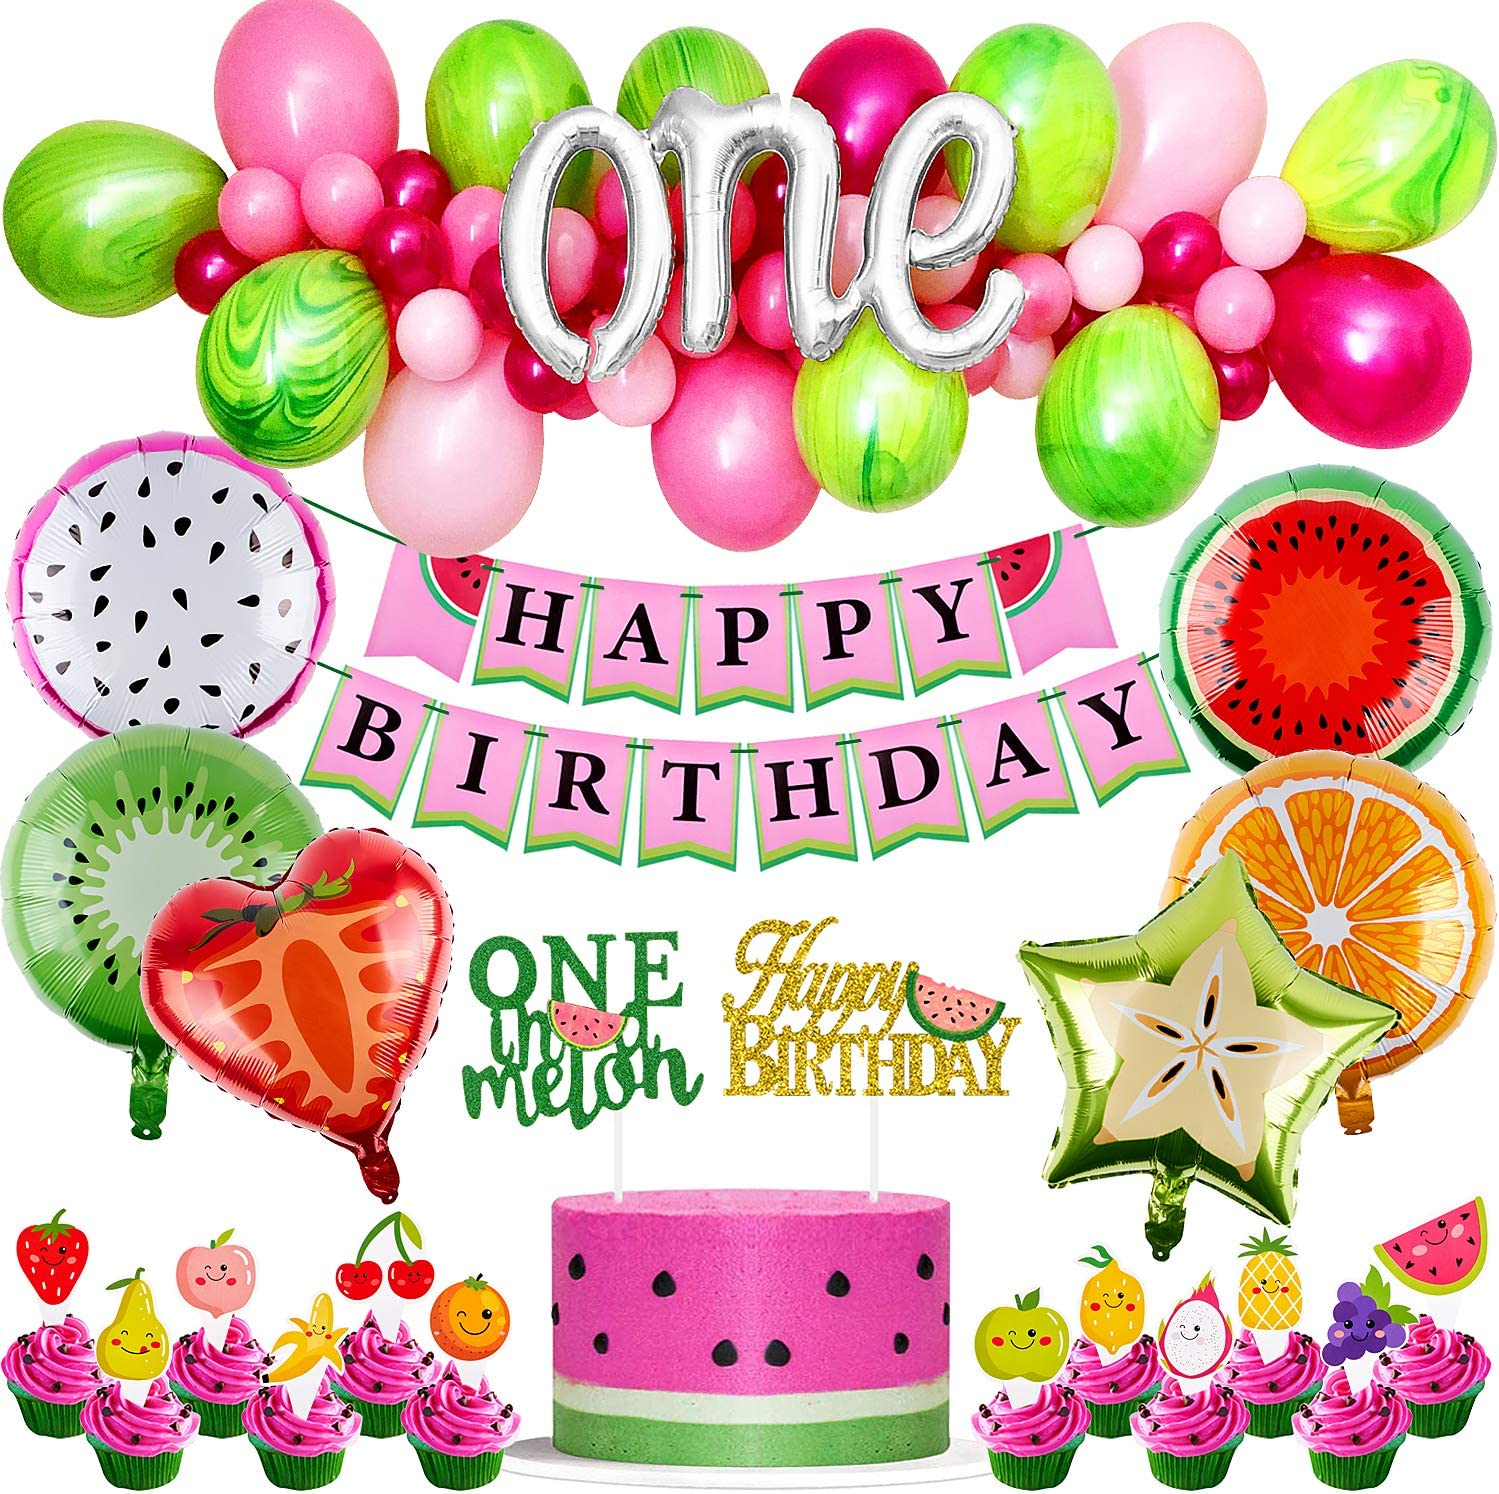 Golray 69 Pack Watermelon Birthday Party Decorations Supplies with Balloons Arch, One in a Melon Cake Cupcake Toppers Watermelon Themed Birthday Banner Summer Fruit Foil Balloons, 1st Birthday Decor One in a Melon Party Decorations